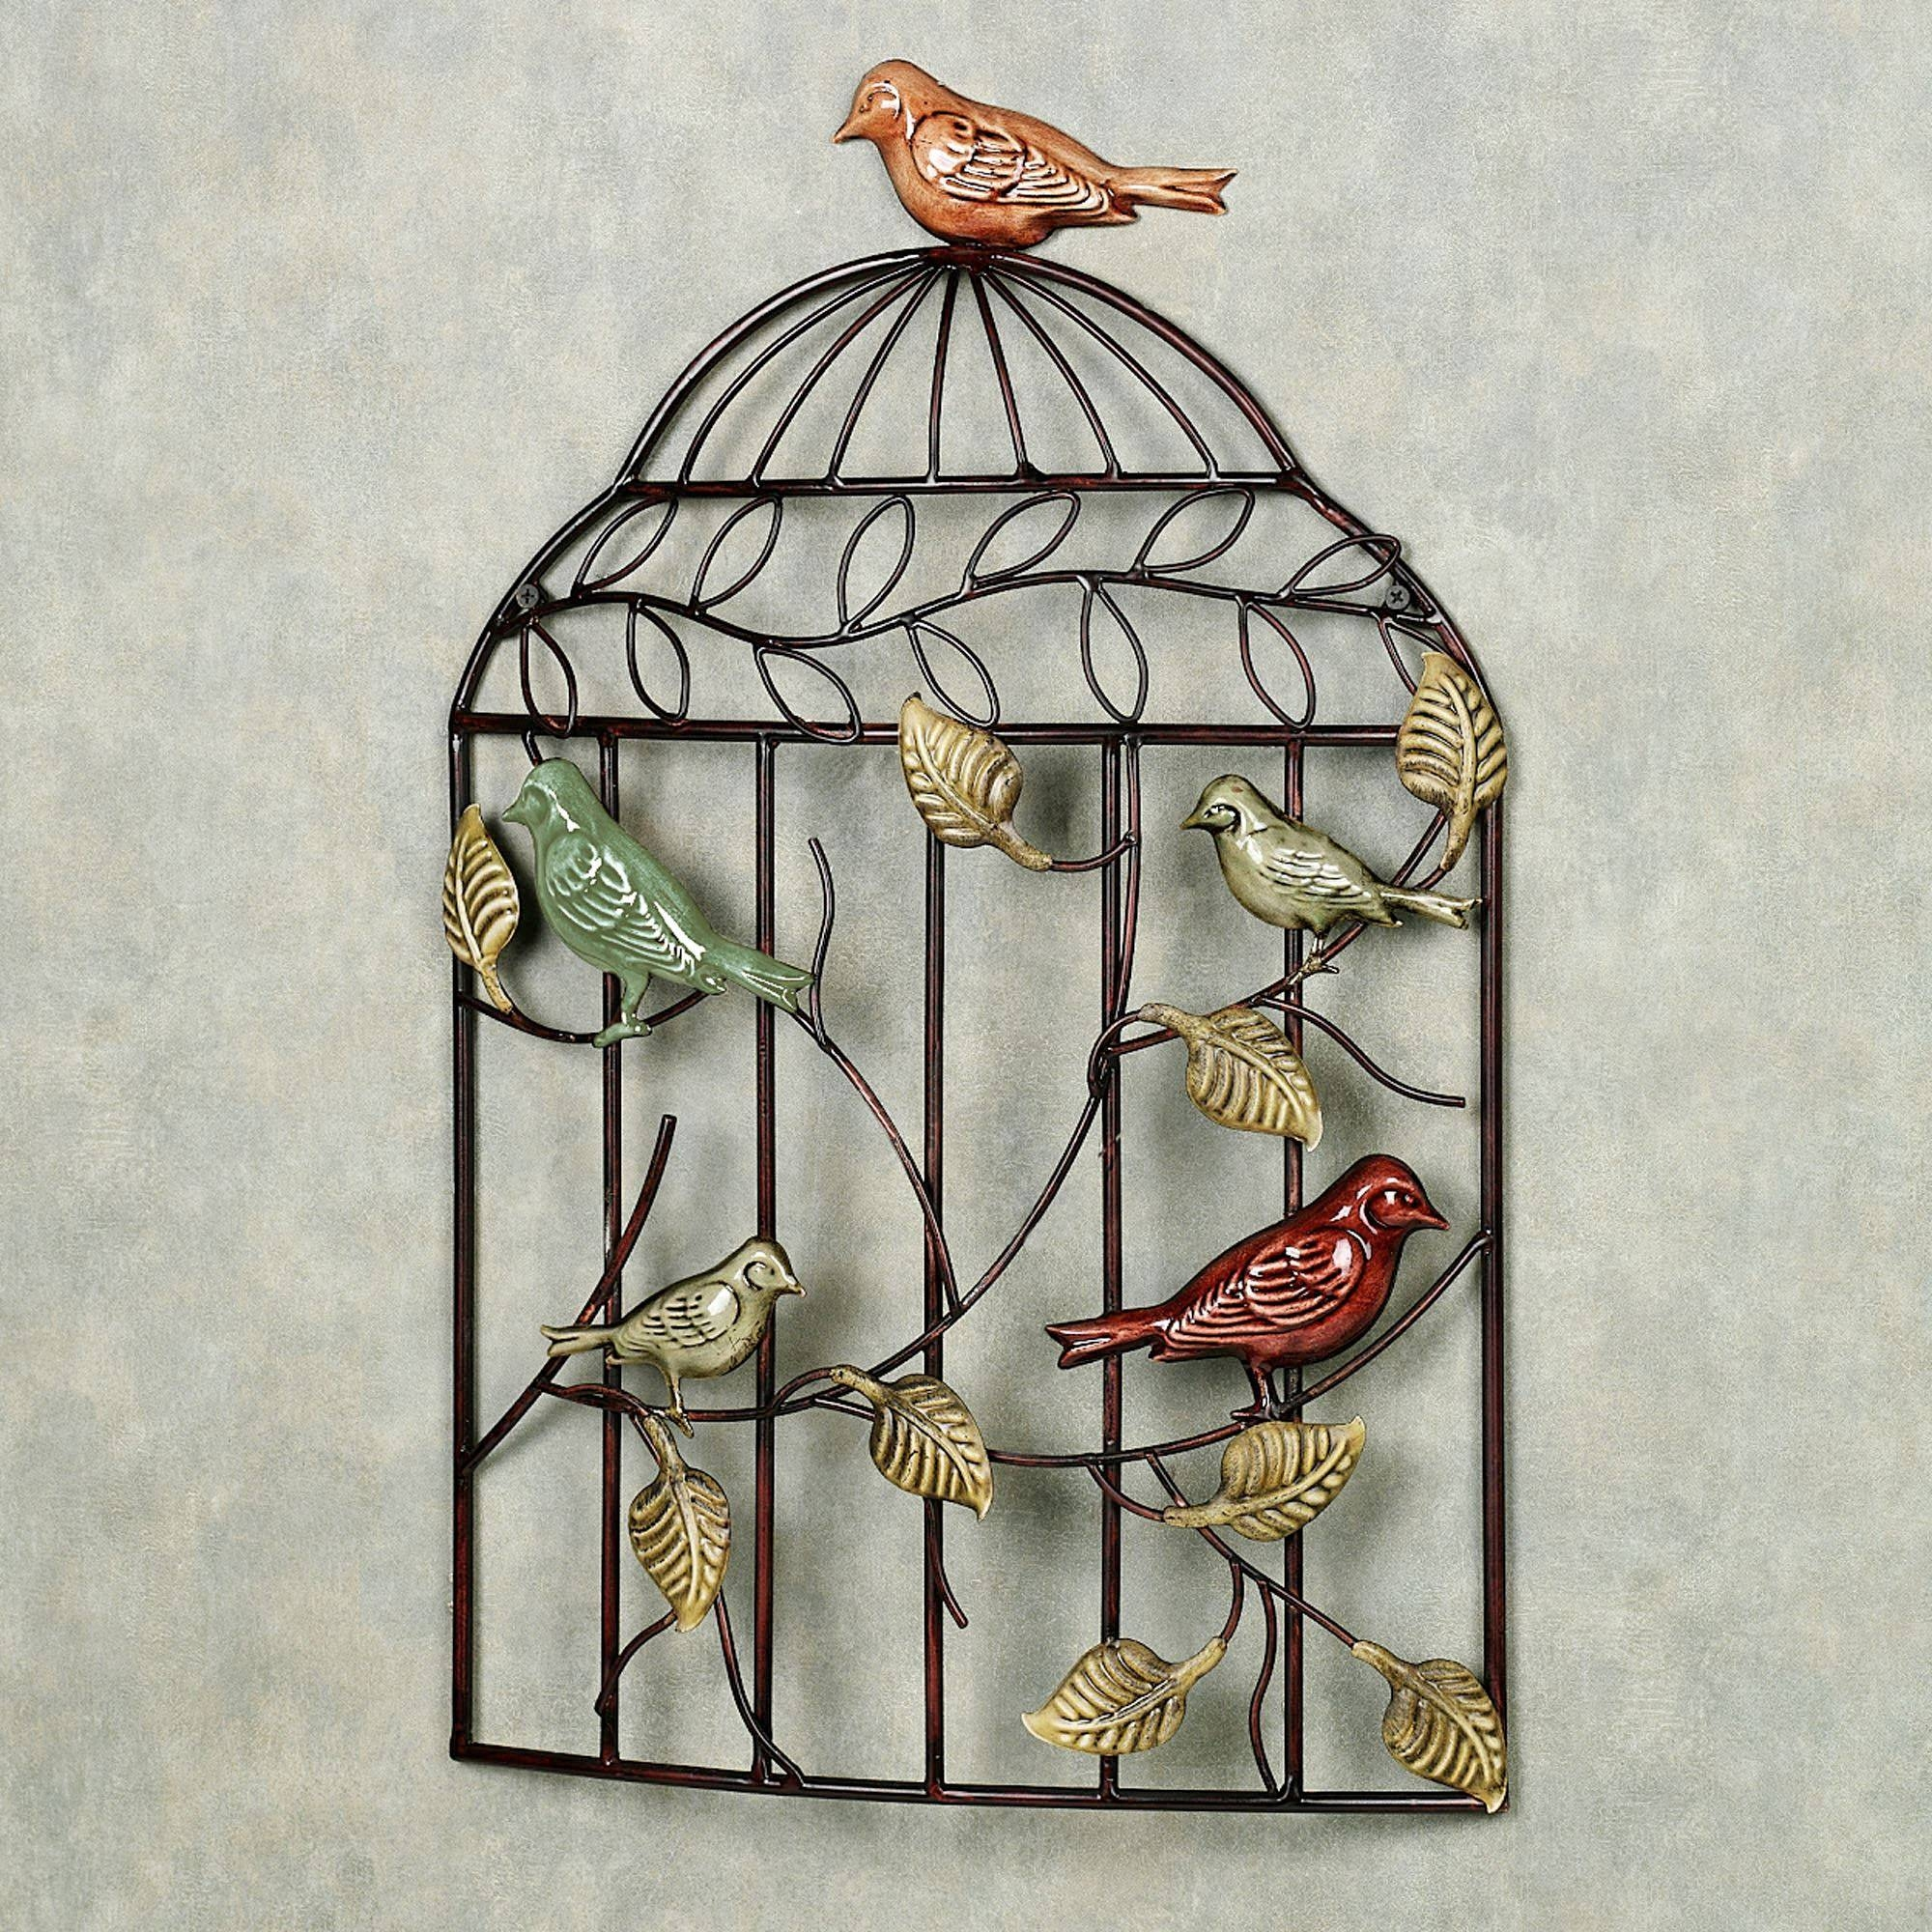 Bird Sanctuary Cage Metal Wall Art Within Current Bird Metal Wall Art (View 13 of 20)